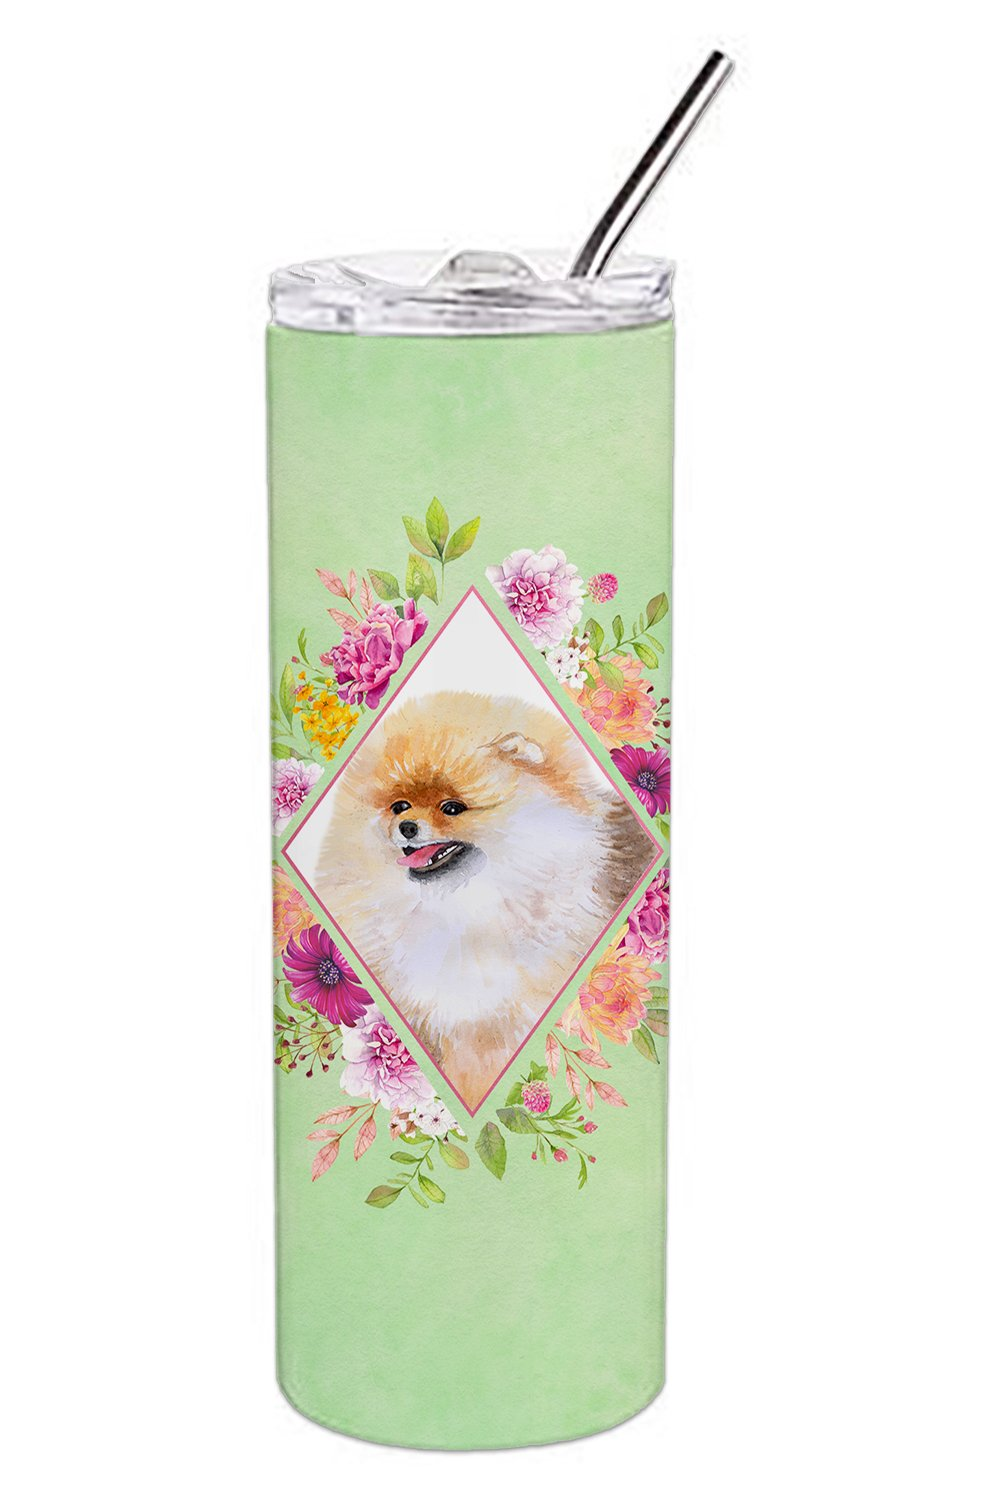 Pomeranian #2 Green Flowers Double Walled Stainless Steel 20 oz Skinny Tumbler CK4330TBL20 by Caroline's Treasures